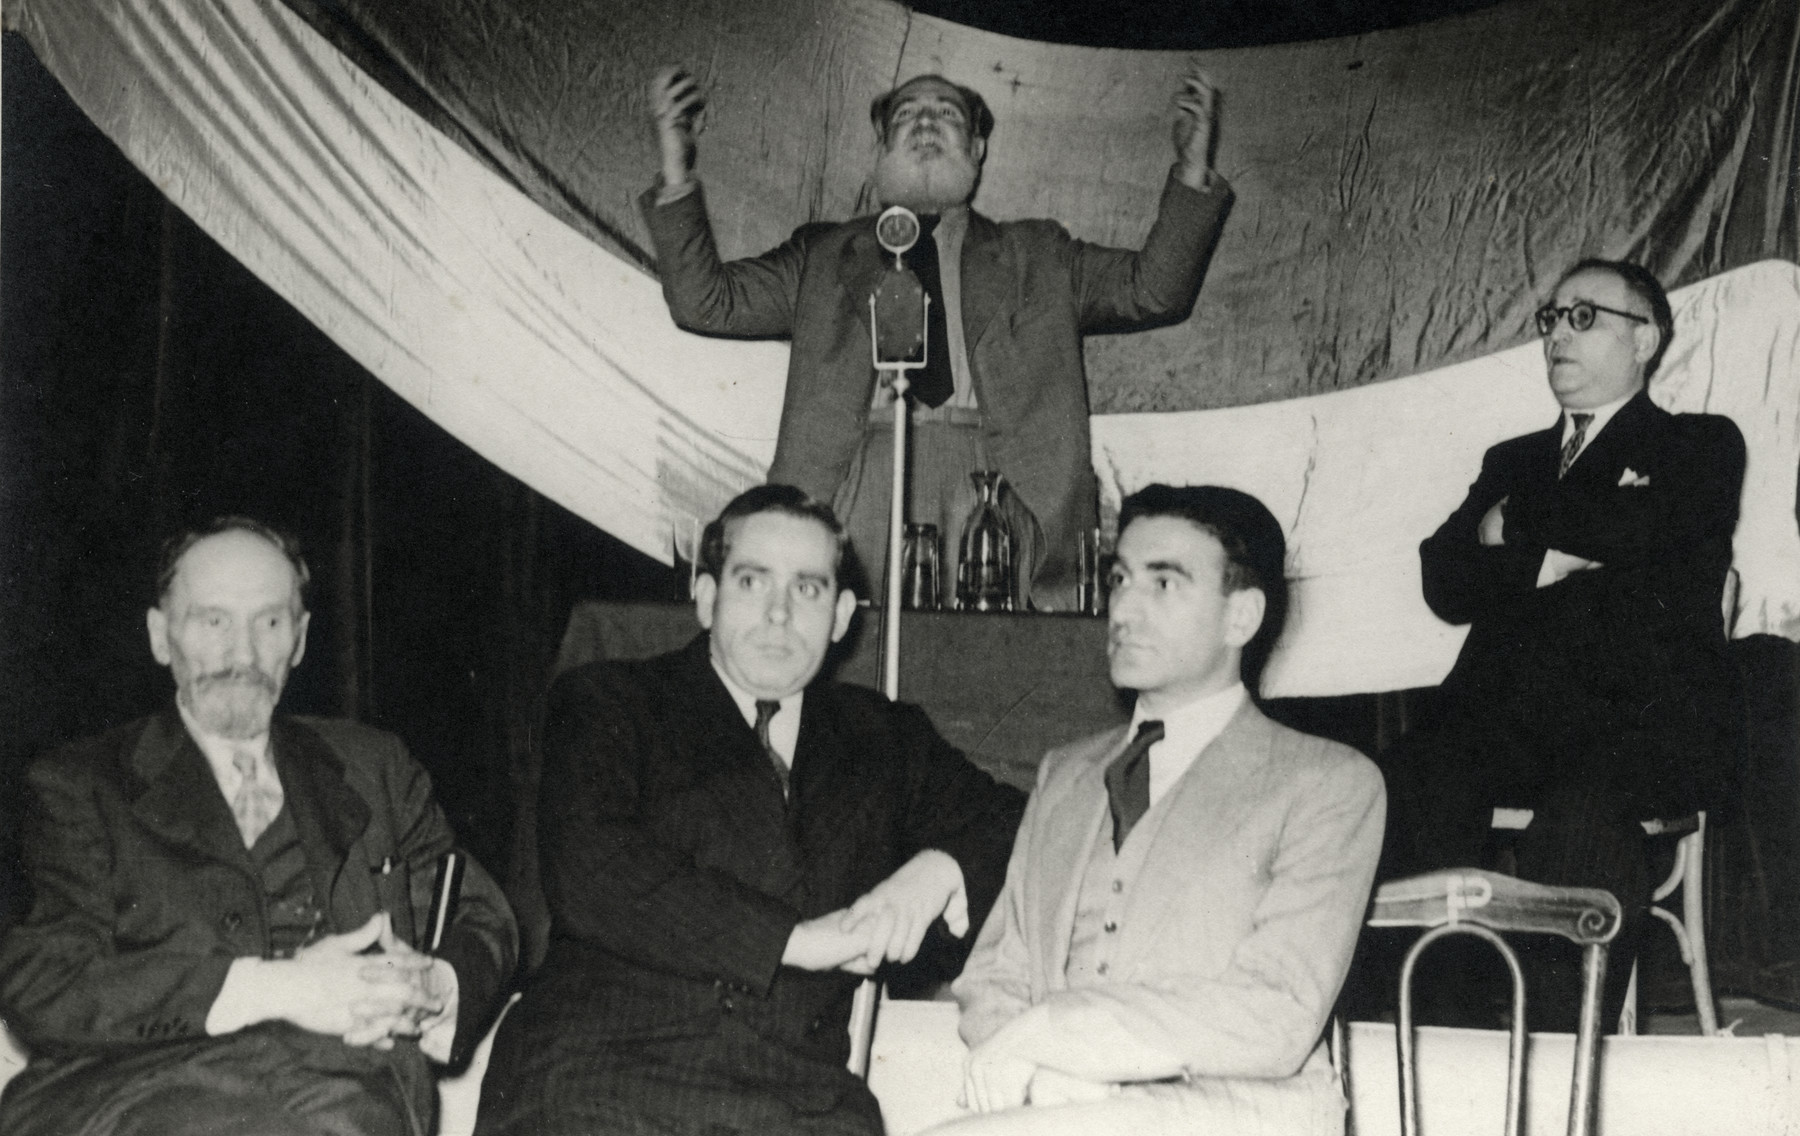 Jacob Zerubavel addresses a meeting of Poalei Zion in Belgium after the war.  Abush Werber is seated on the right.